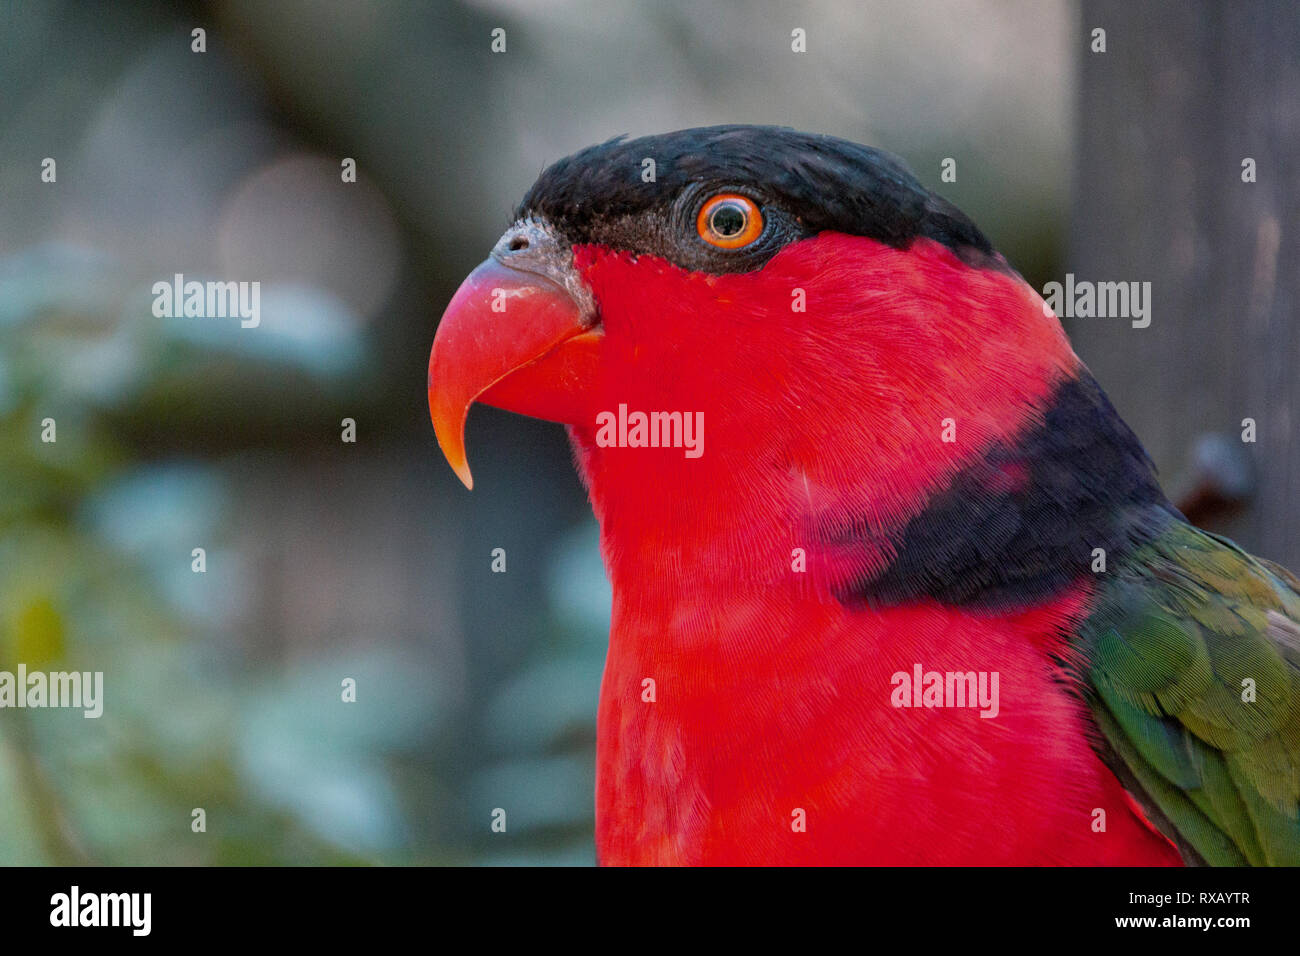 A close up side view of a red and black lorikeet on a wooden purch watching the sky - Stock Image